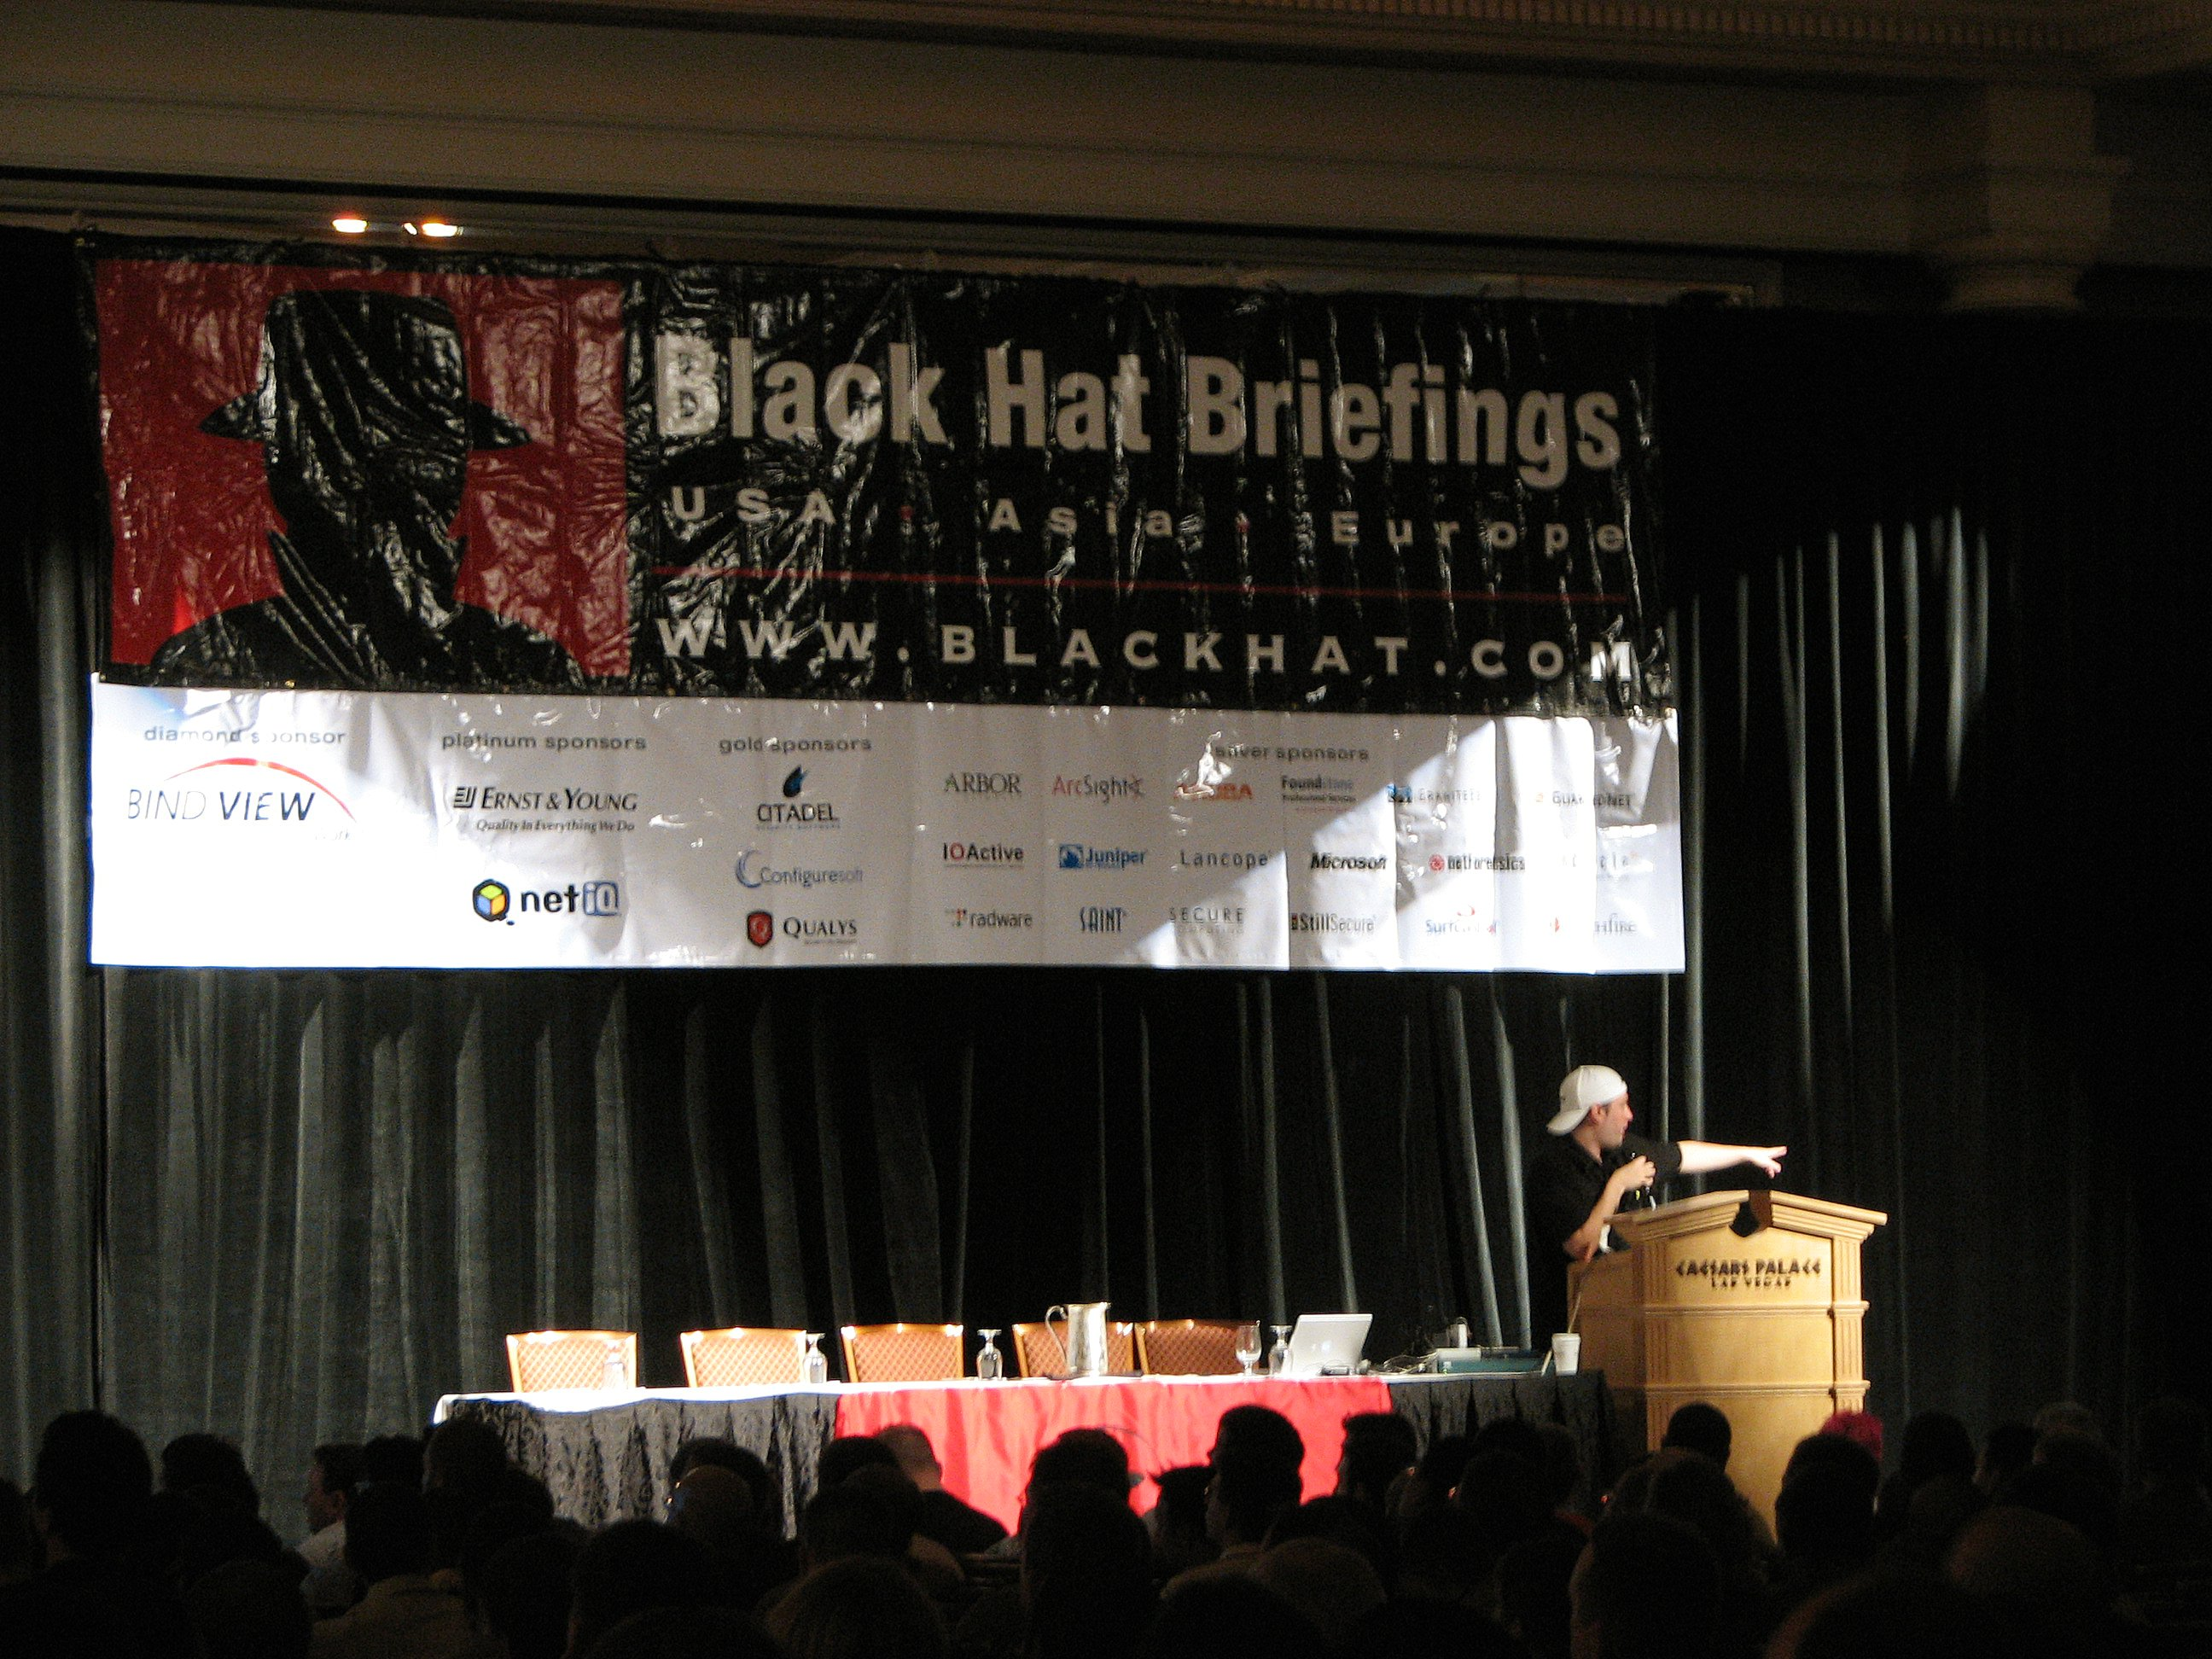 Man in white hat is standing at a podium and speaking to audience with a large banner in the background